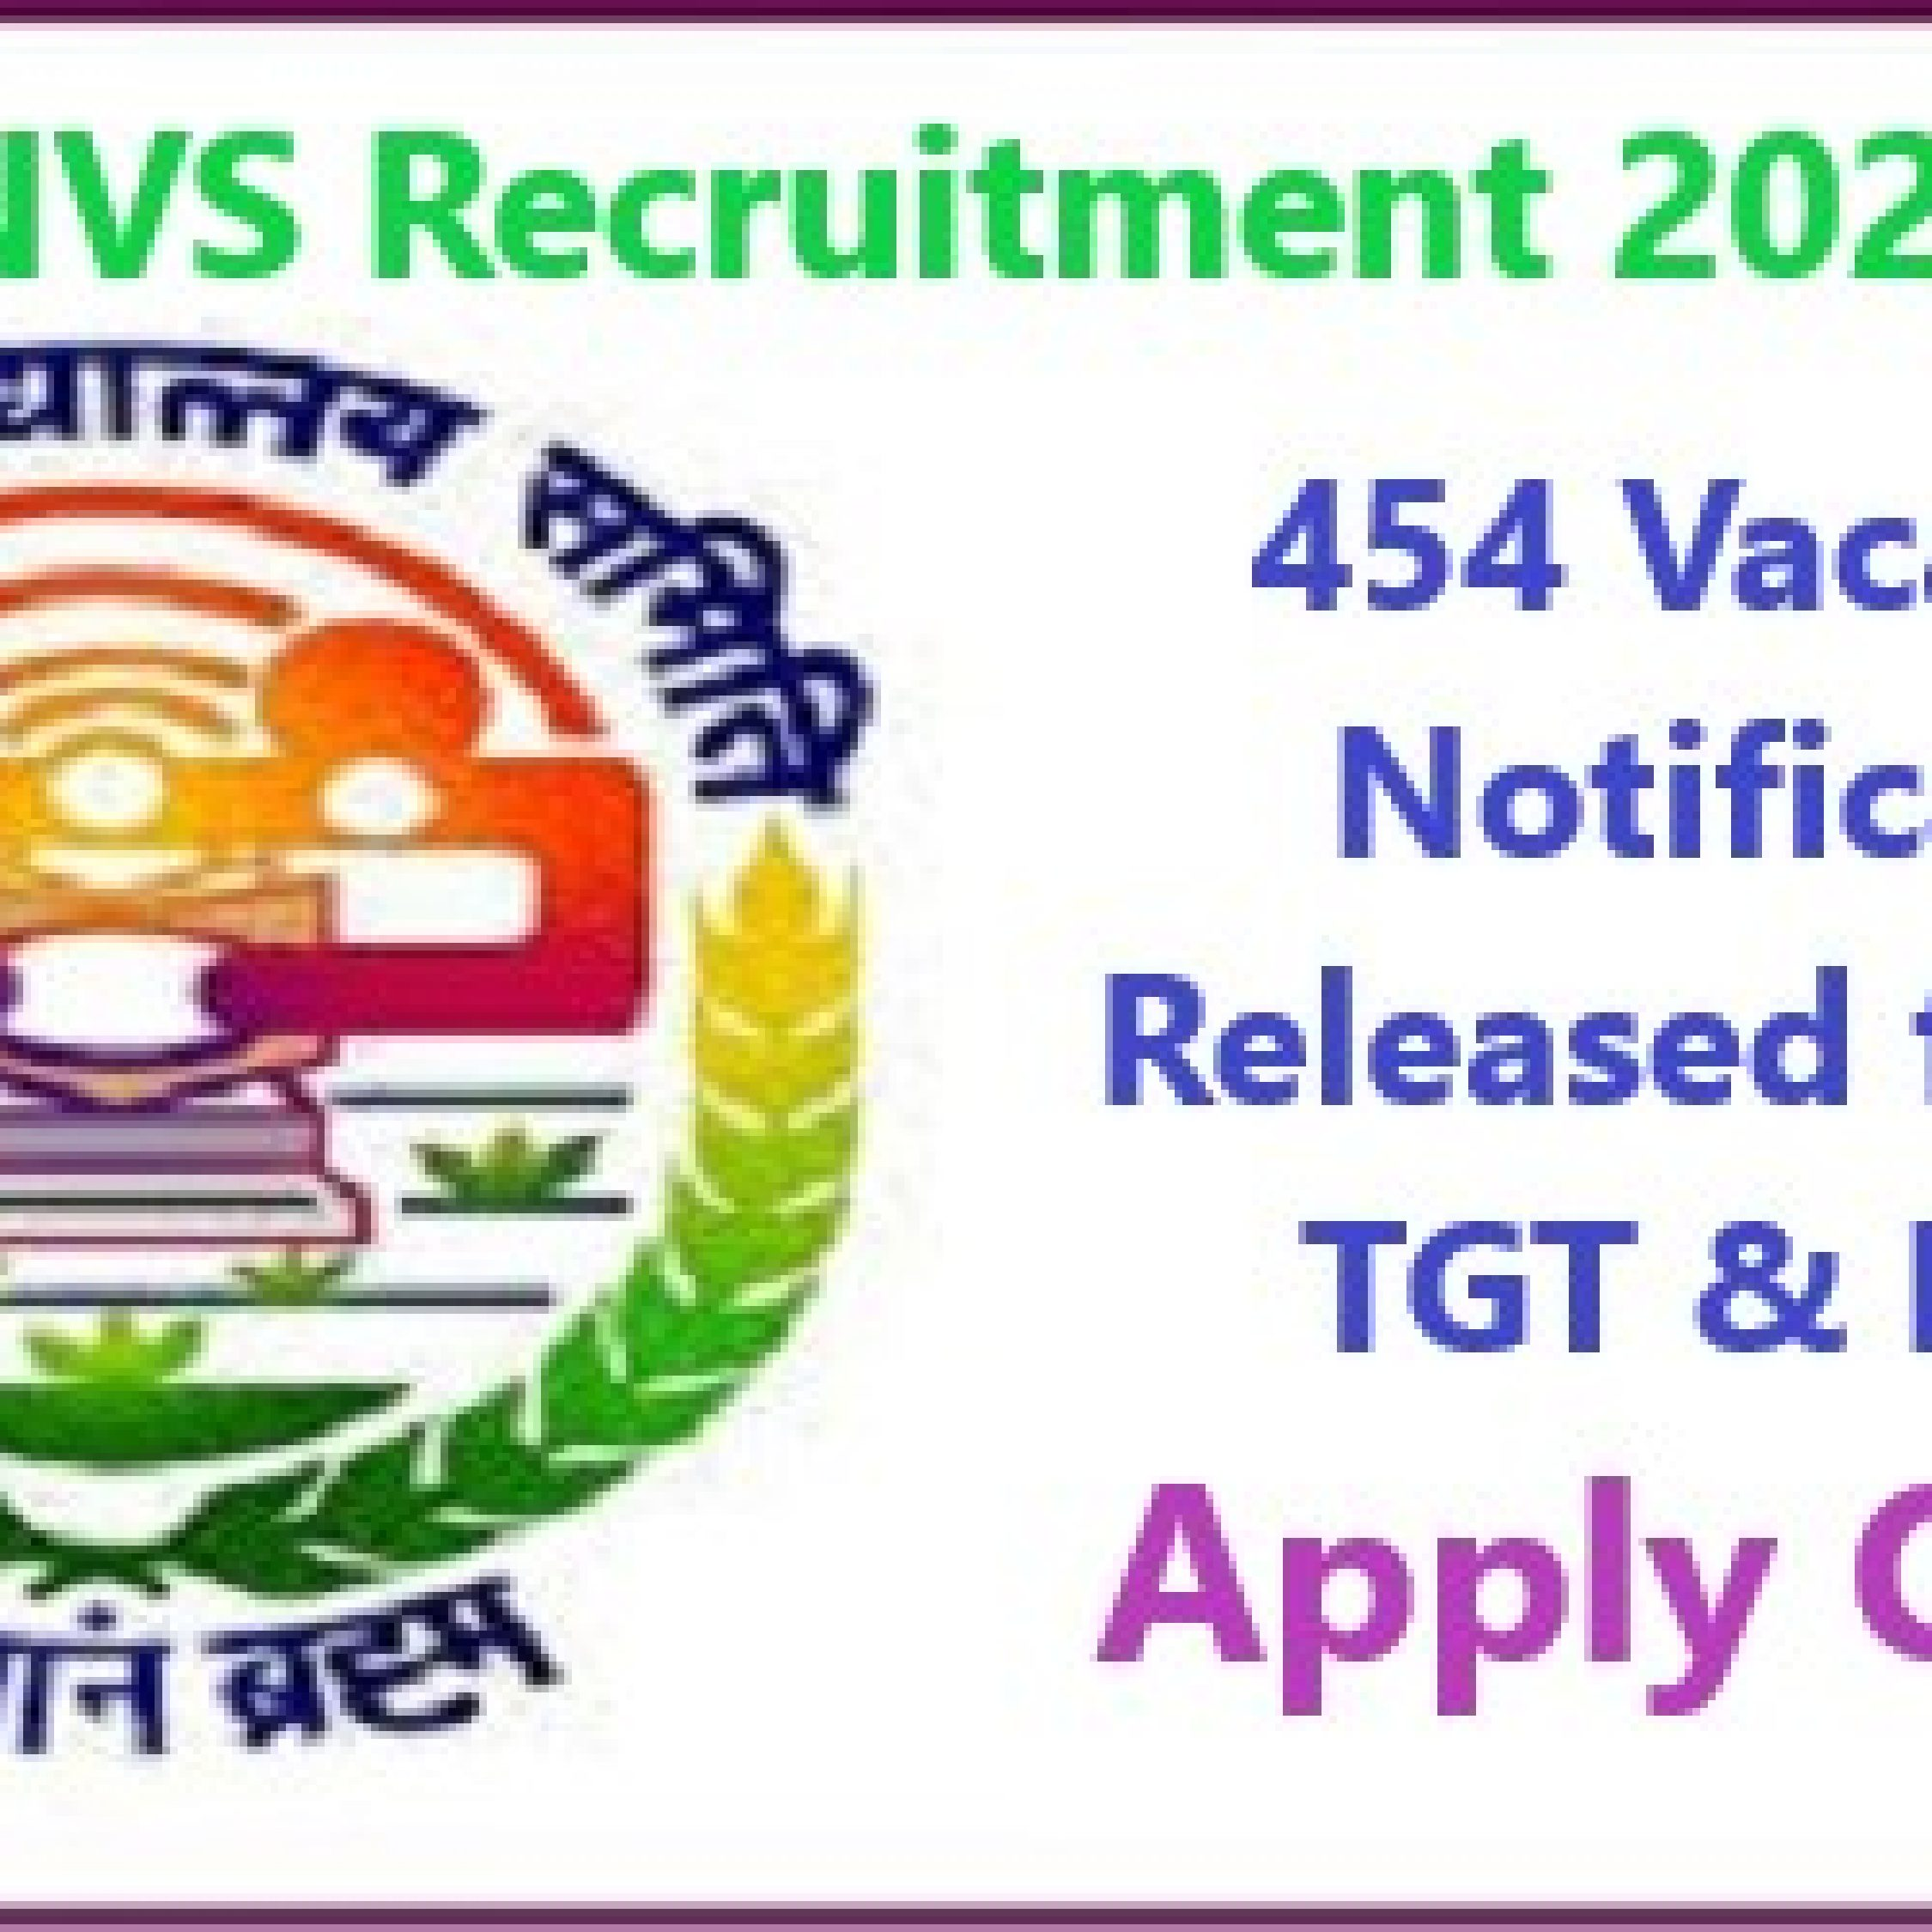 NVS Recruitment 2020 Notification Released: Apply For 454 Vacancies Of PGT, TGT & FCSA Through Email